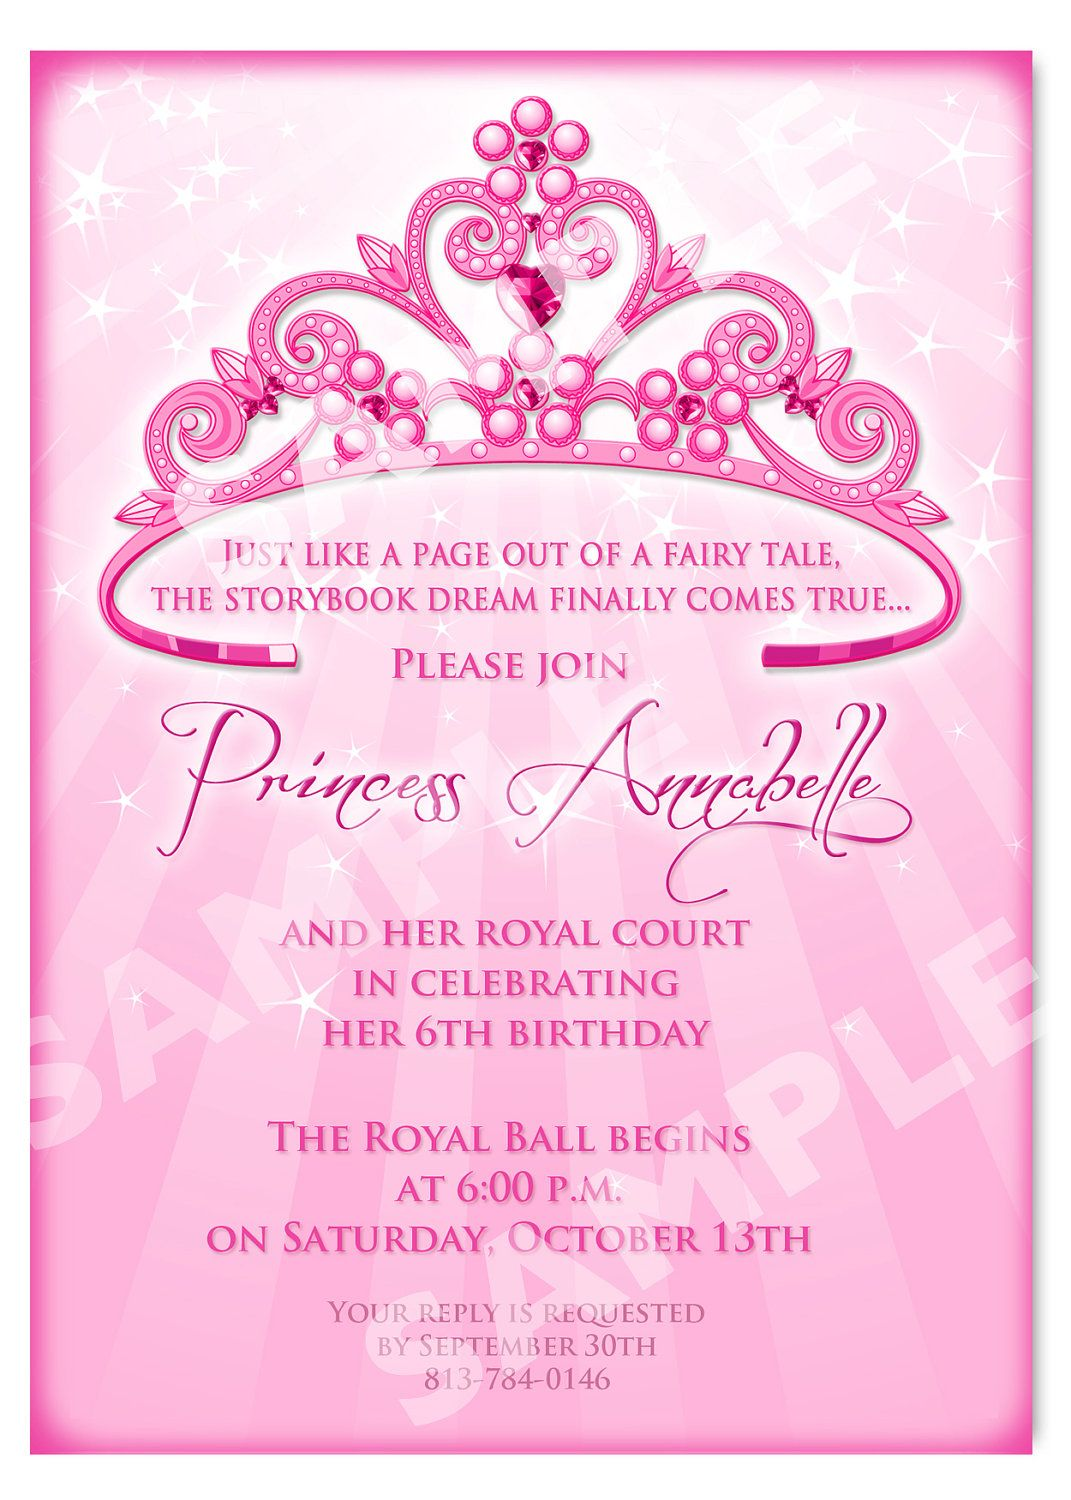 Printable Princess Invitation Cards Birthday Party Ideas - Princess birthday invitation templates free